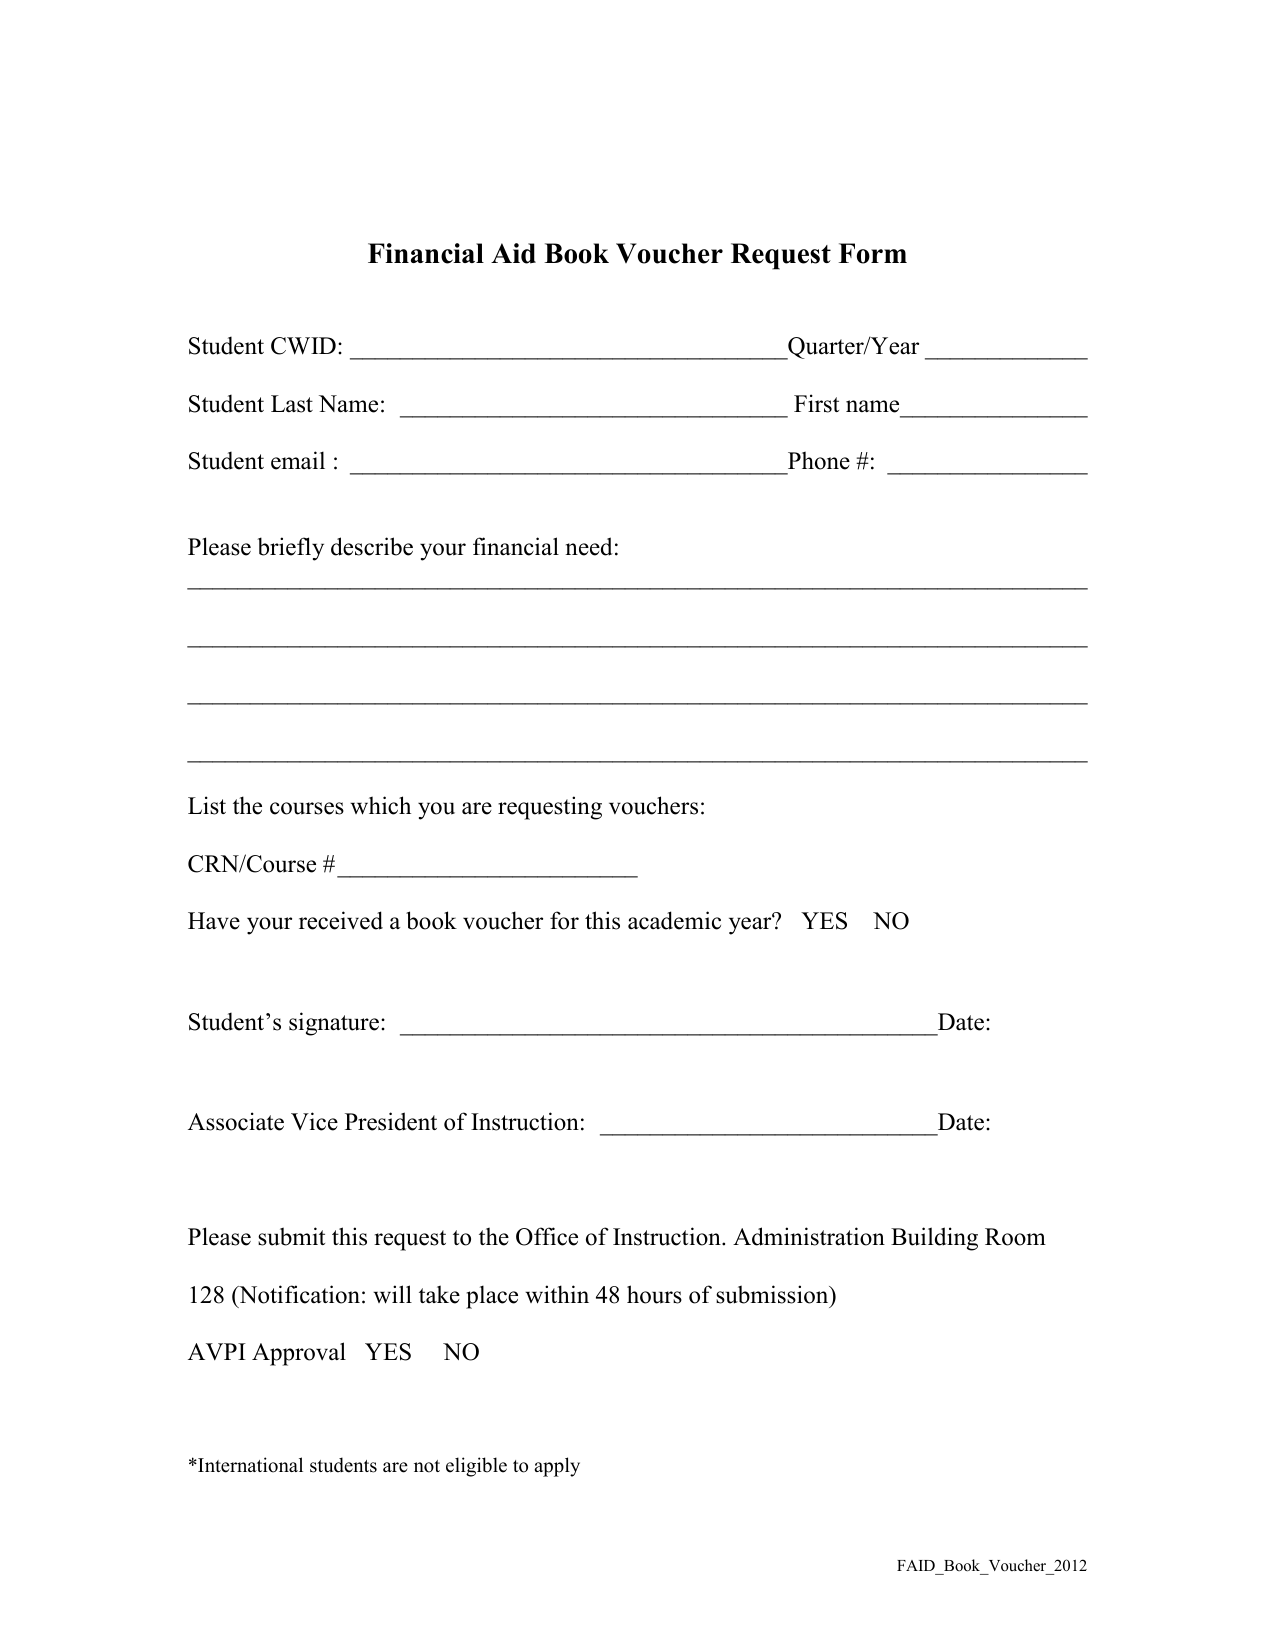 what is a financial aid book voucher